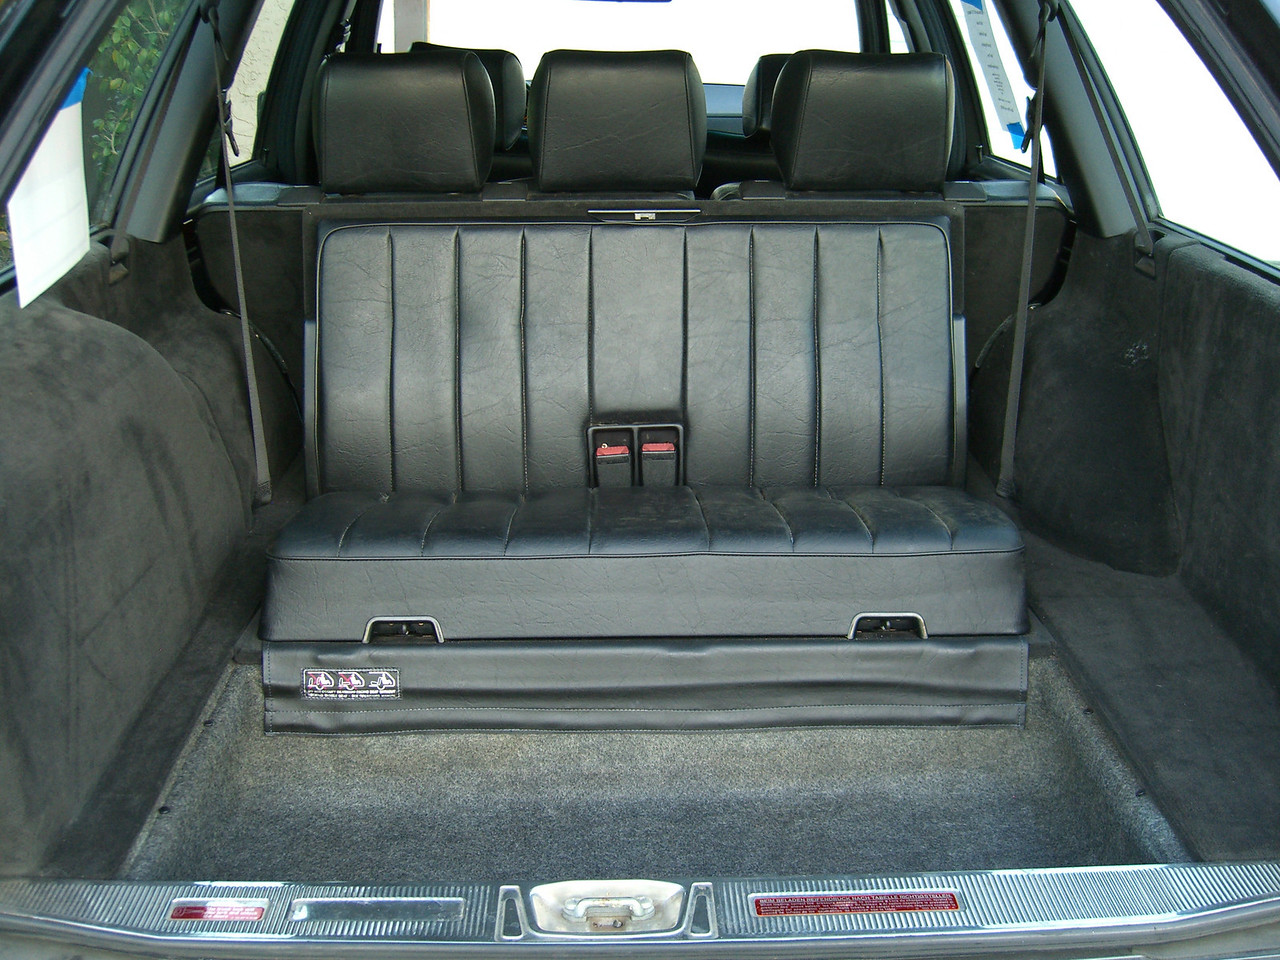 7 Seater Station Wagon